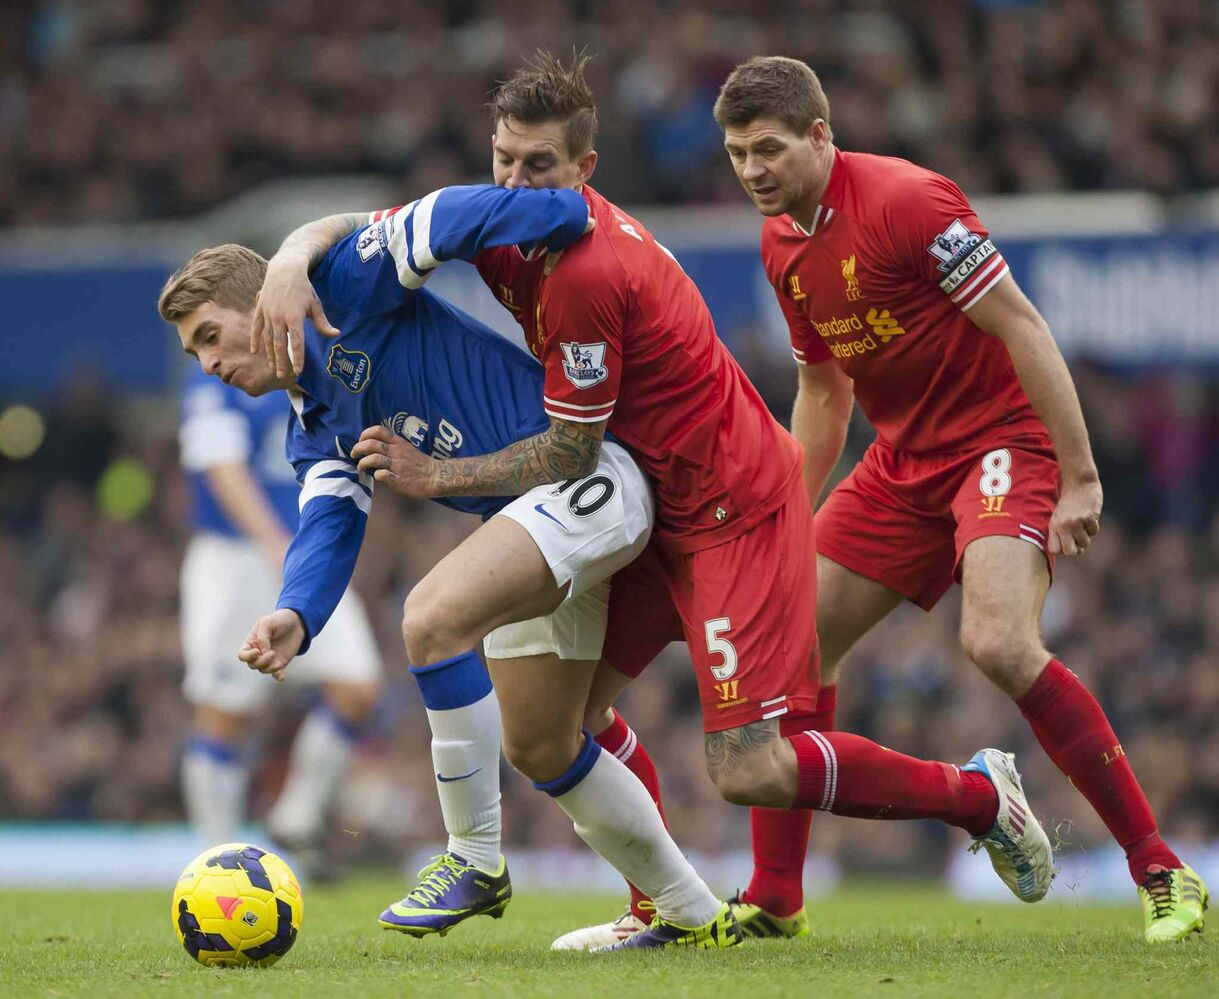 Everton's Gerard Deulofeu (left) battles for the ball against Liverpool's Daniel Agger (centre) as Steven Gerrard looks on during their English Premier League soccer match at Goodison Park Stadium, Liverpool, England on Saturday. (Jon Super / The Associated Press)